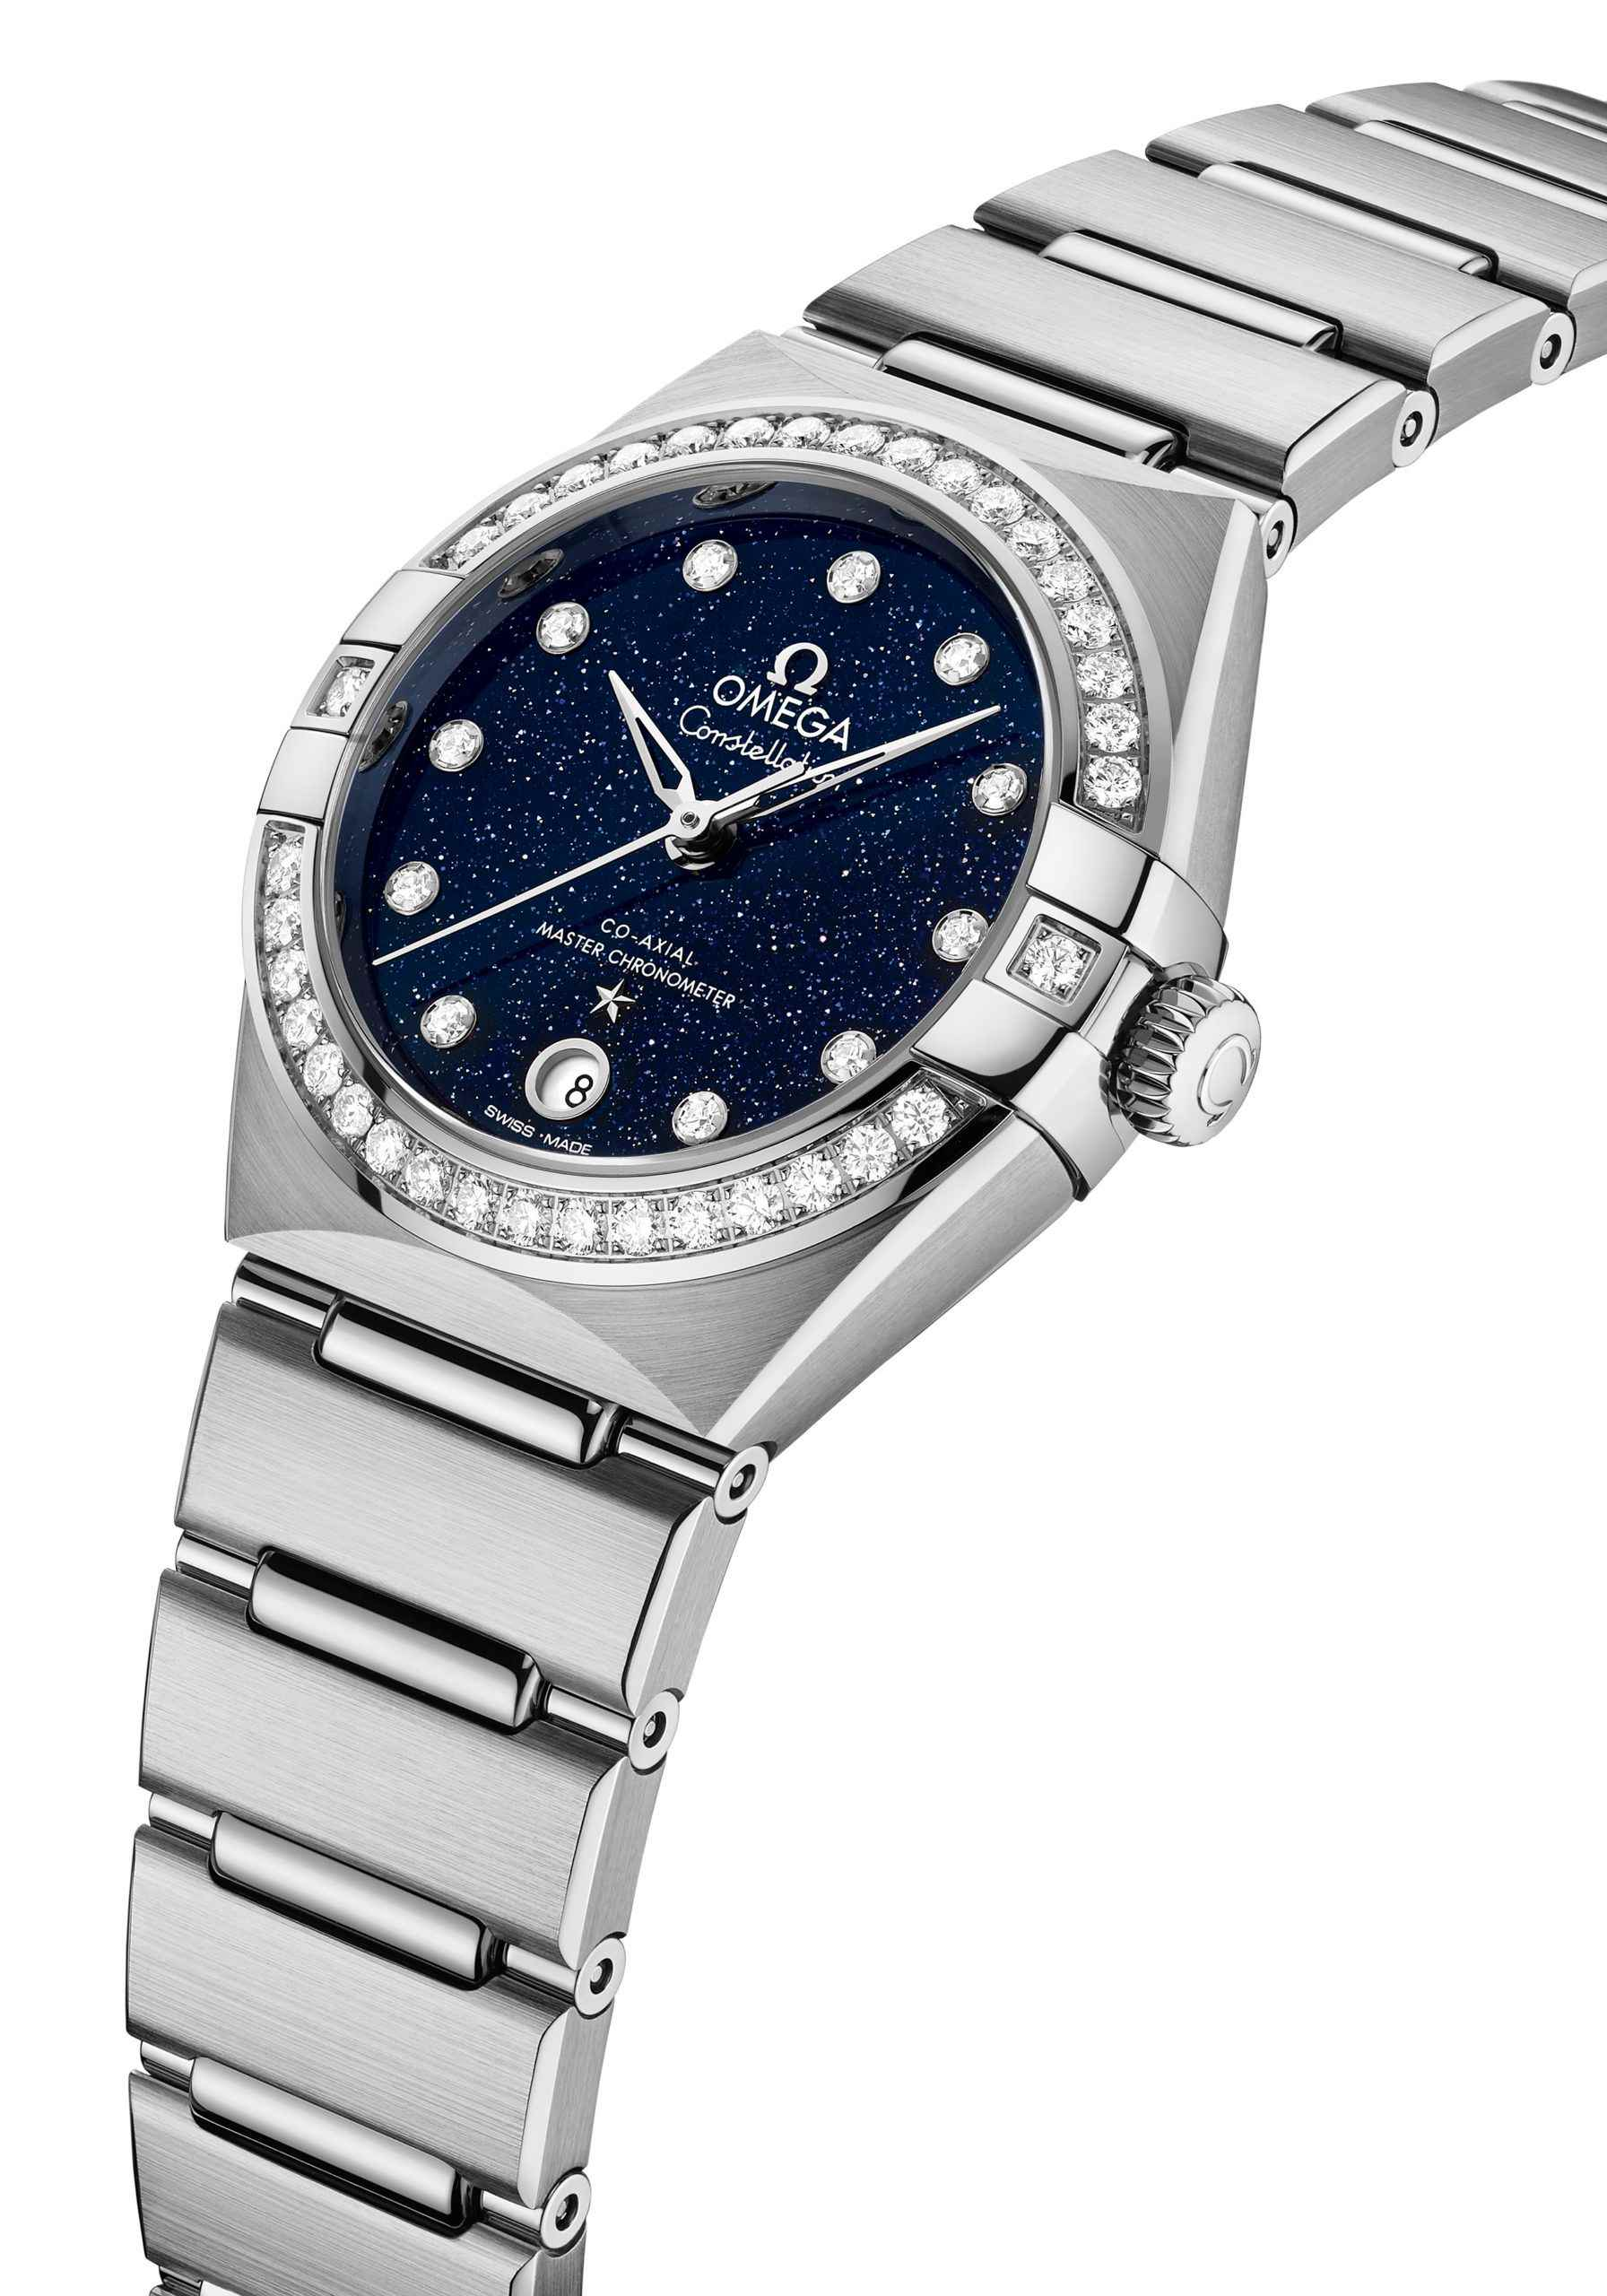 New OMEGA Constellation Watches with Aventurine Dials